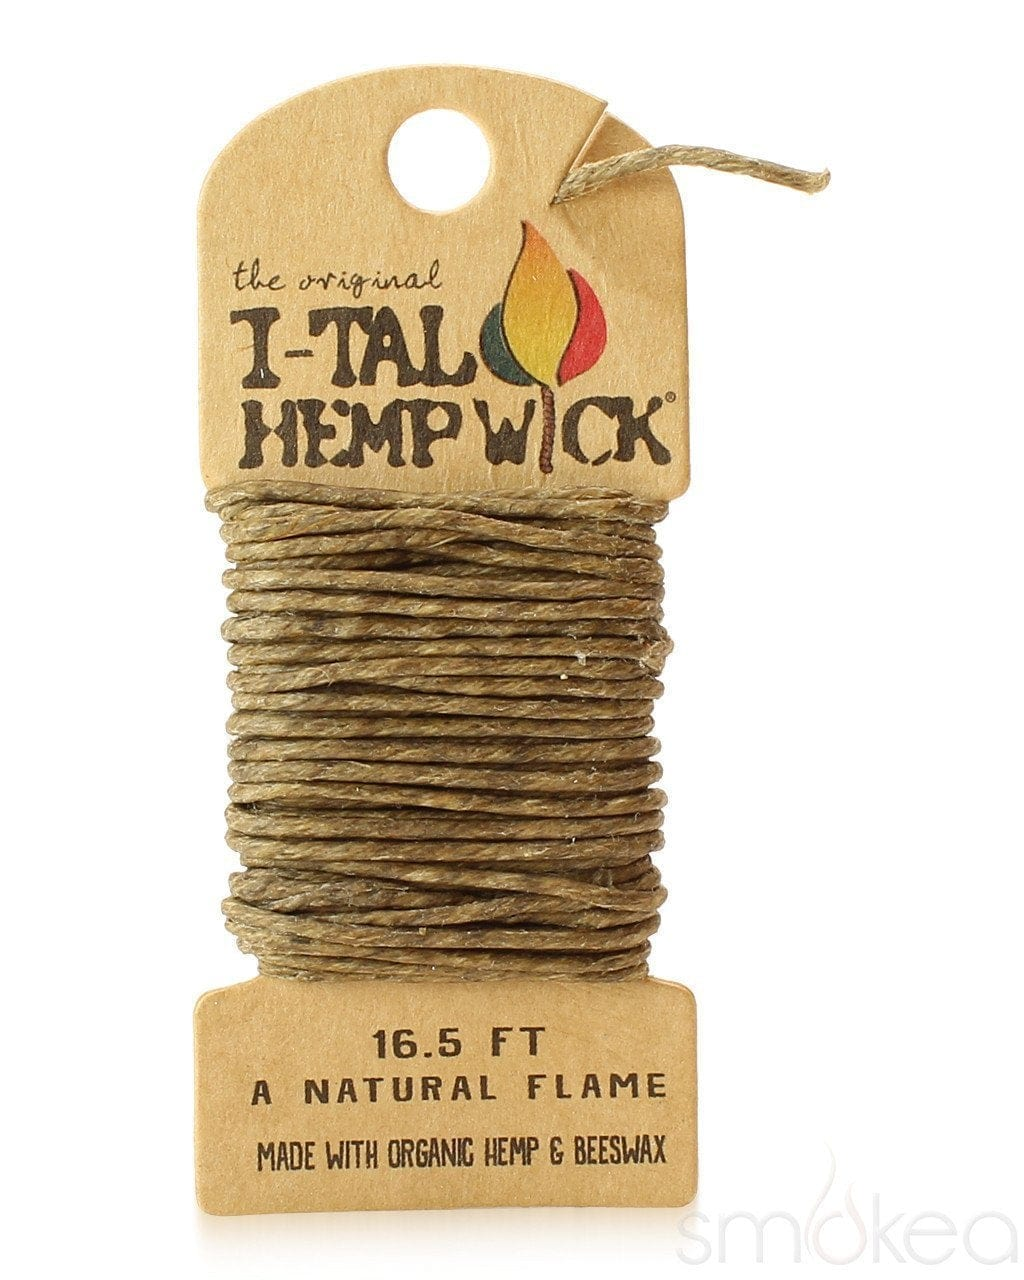 i-Tal Large Hemp Wick - SMOKEA